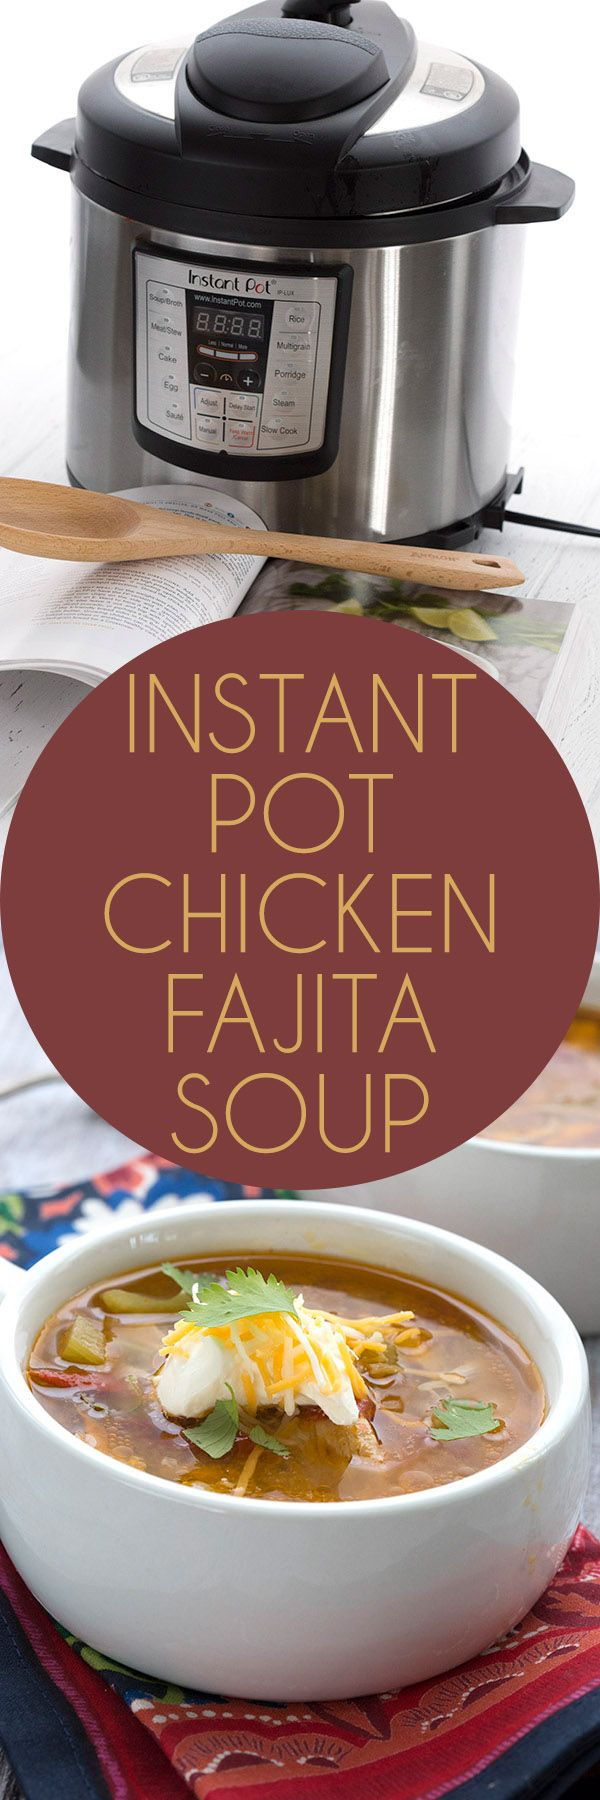 This fabulously easy low carb Chicken Fajita Soup is a crowd pleaser. Make it in your Instant Pot or your slow cooker! And you can win a copy of the new Trim Healthy Table cookbook too! #TrimHealthyTable #ad  via @dreamaboutfood